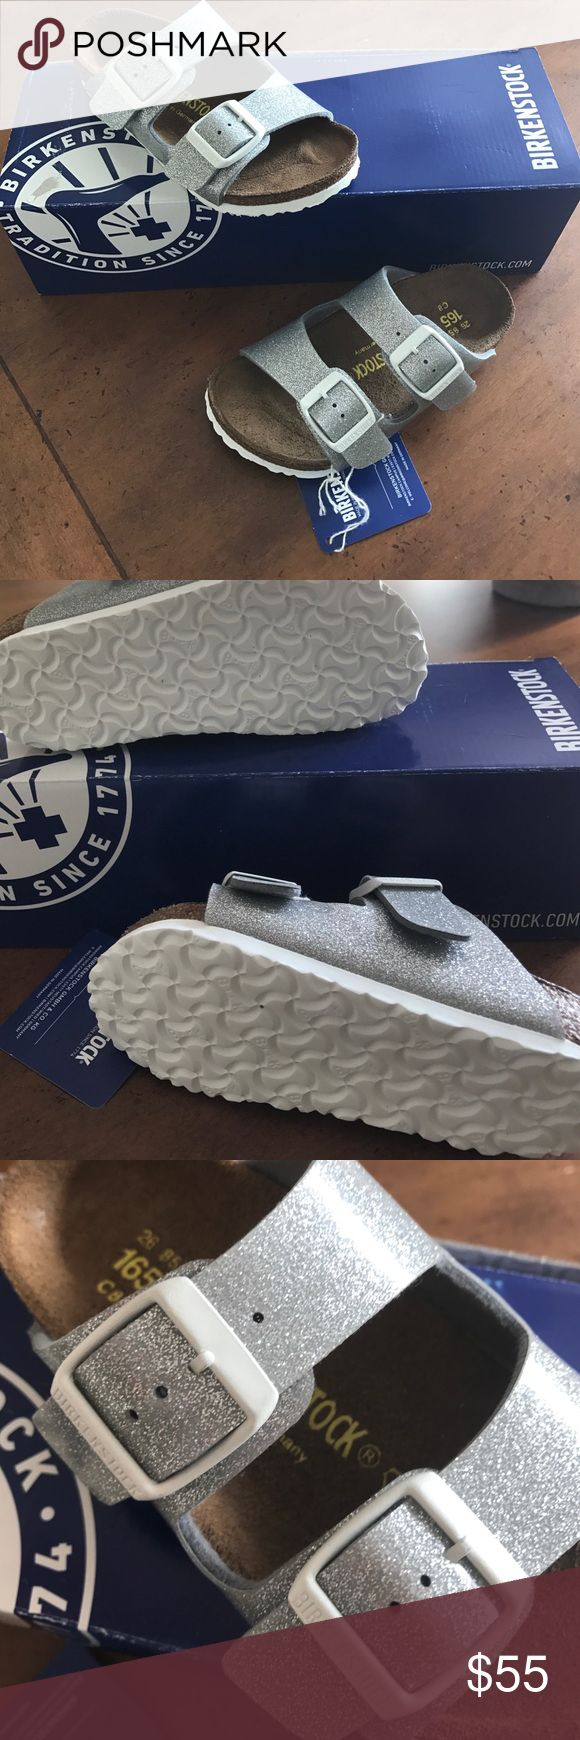 NWT Birkenstock Arizona Kids Magic Galaxy Silver Absolutely adorable Birkenstock sandals in a metallic/glittery silver your little one will love! They are so precious, but sadly they are too small for my little girl. Never worn! NWT and box! Birkenstock Shoes Sandals & Flip Flops